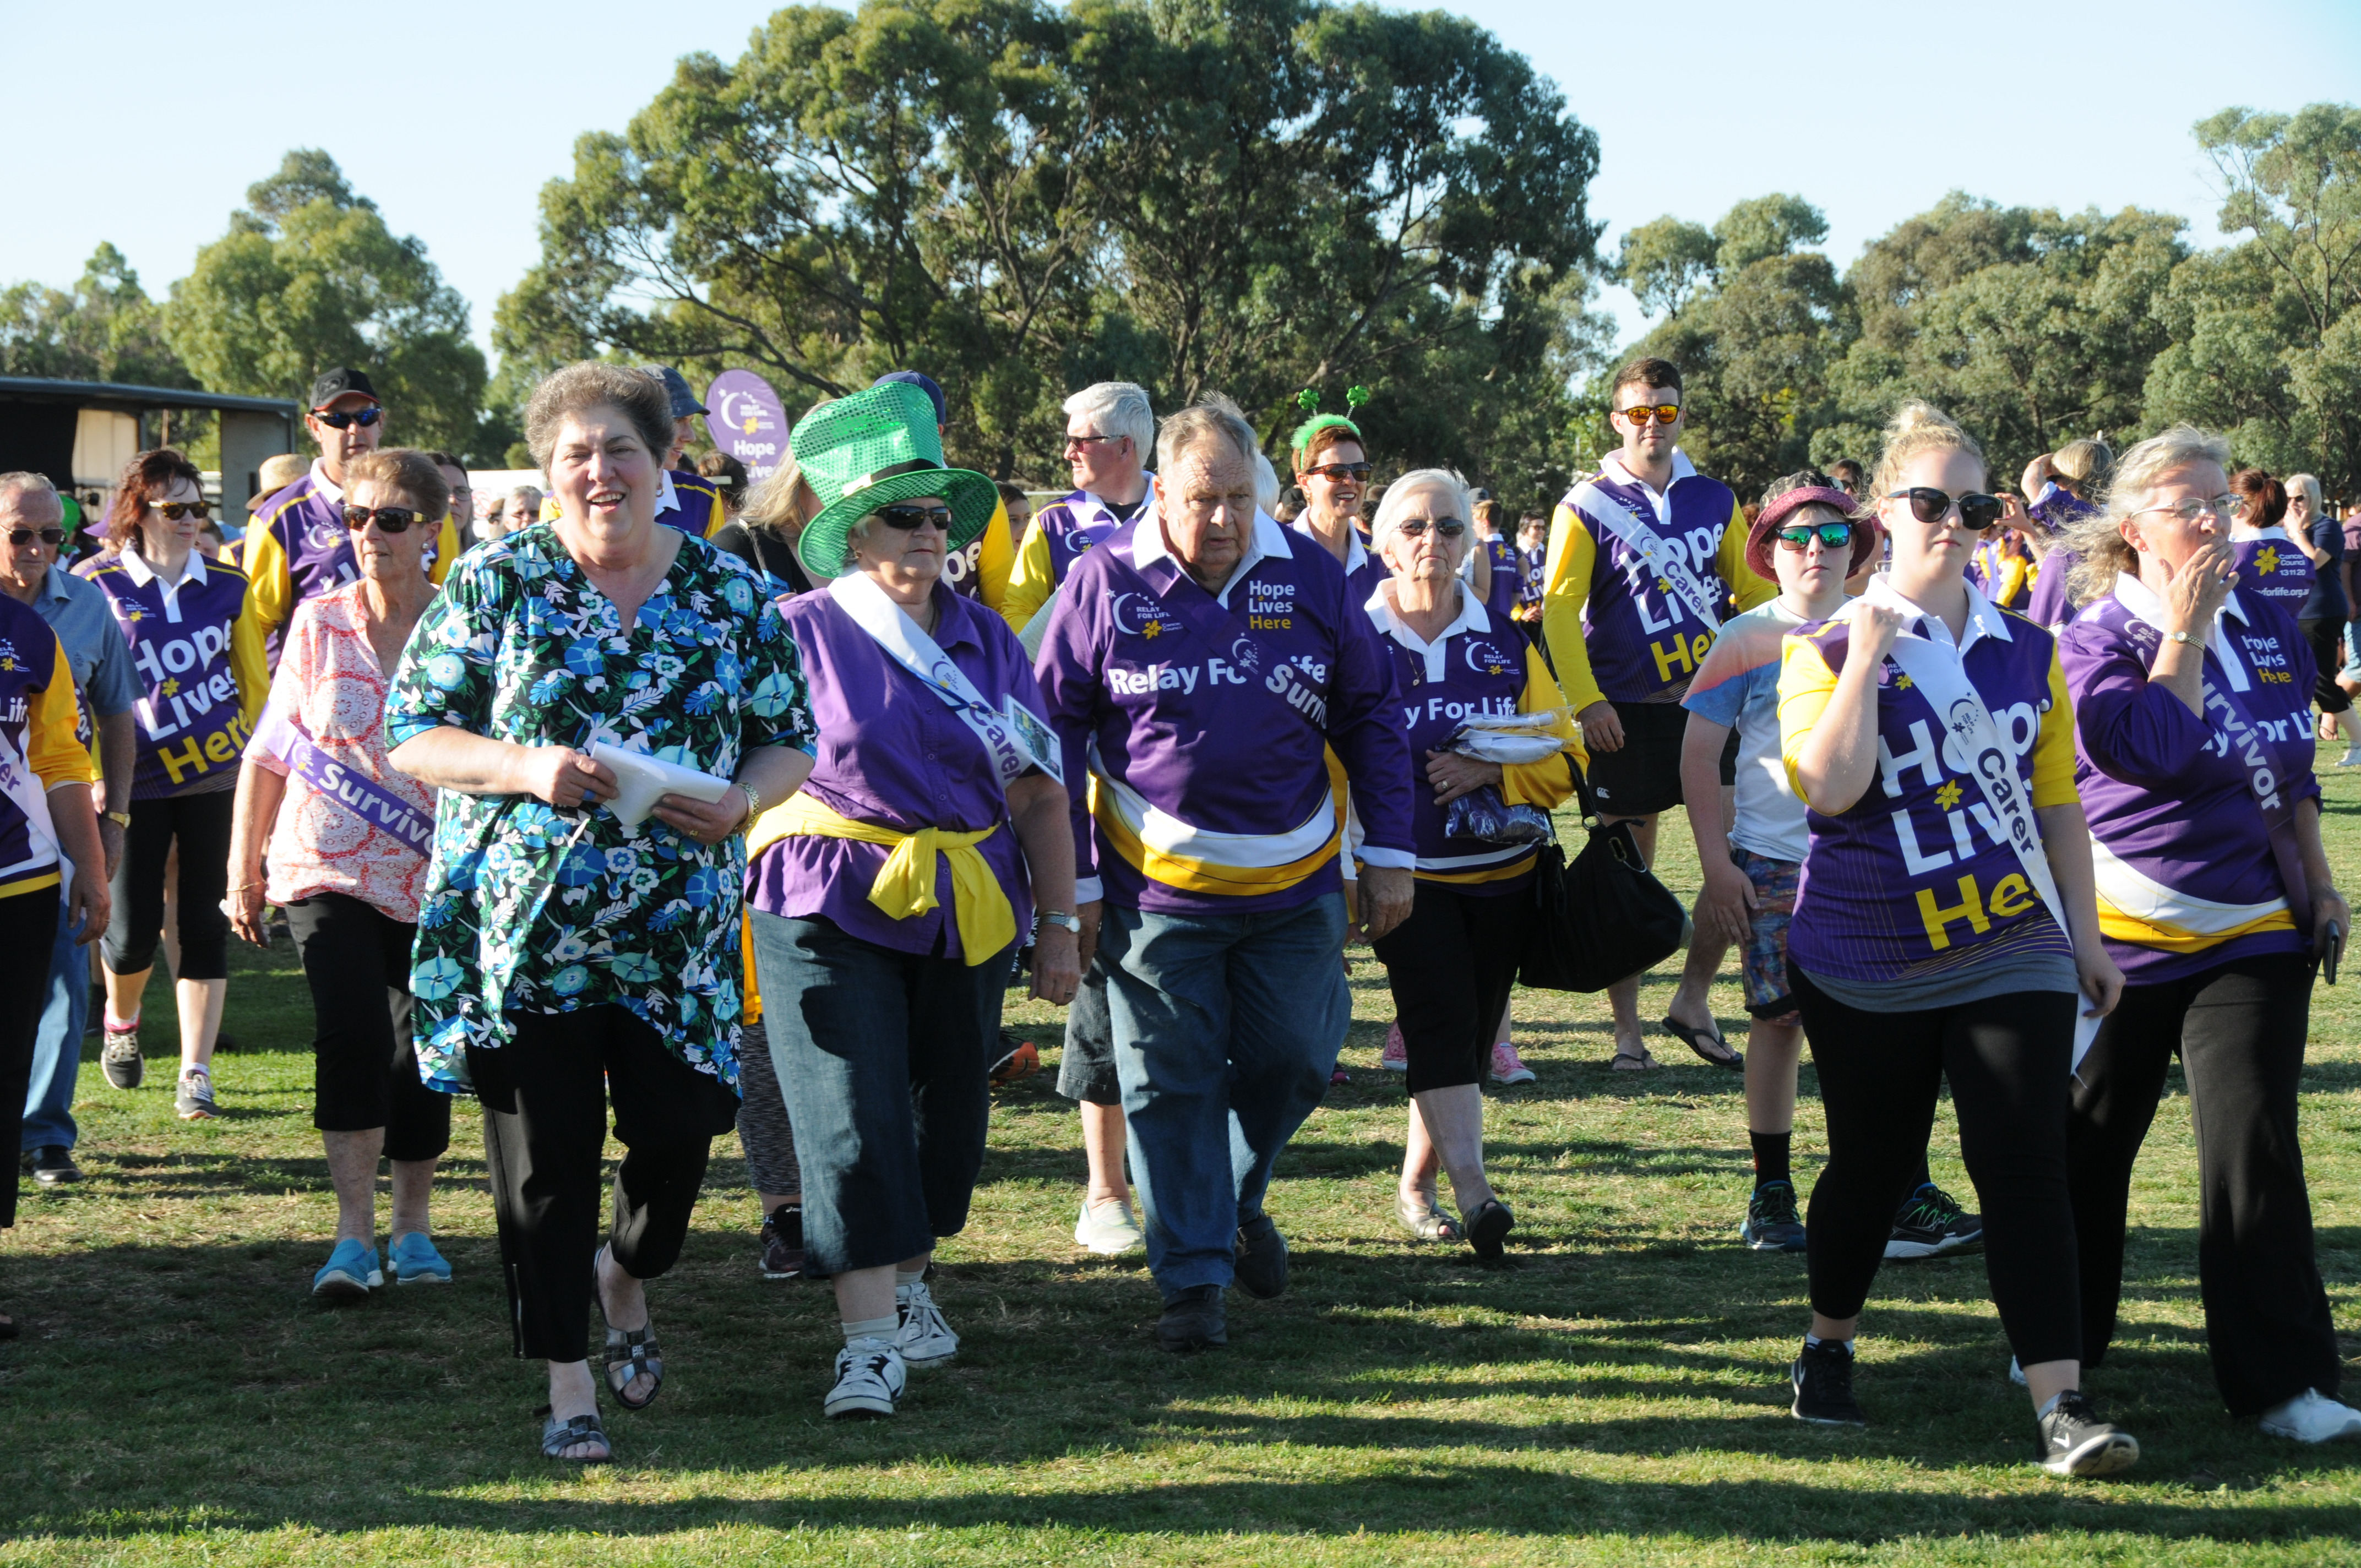 Image - Horsham and District Relay for Life, 170317. Survivors and carers walked the first lap before other participants joined in.